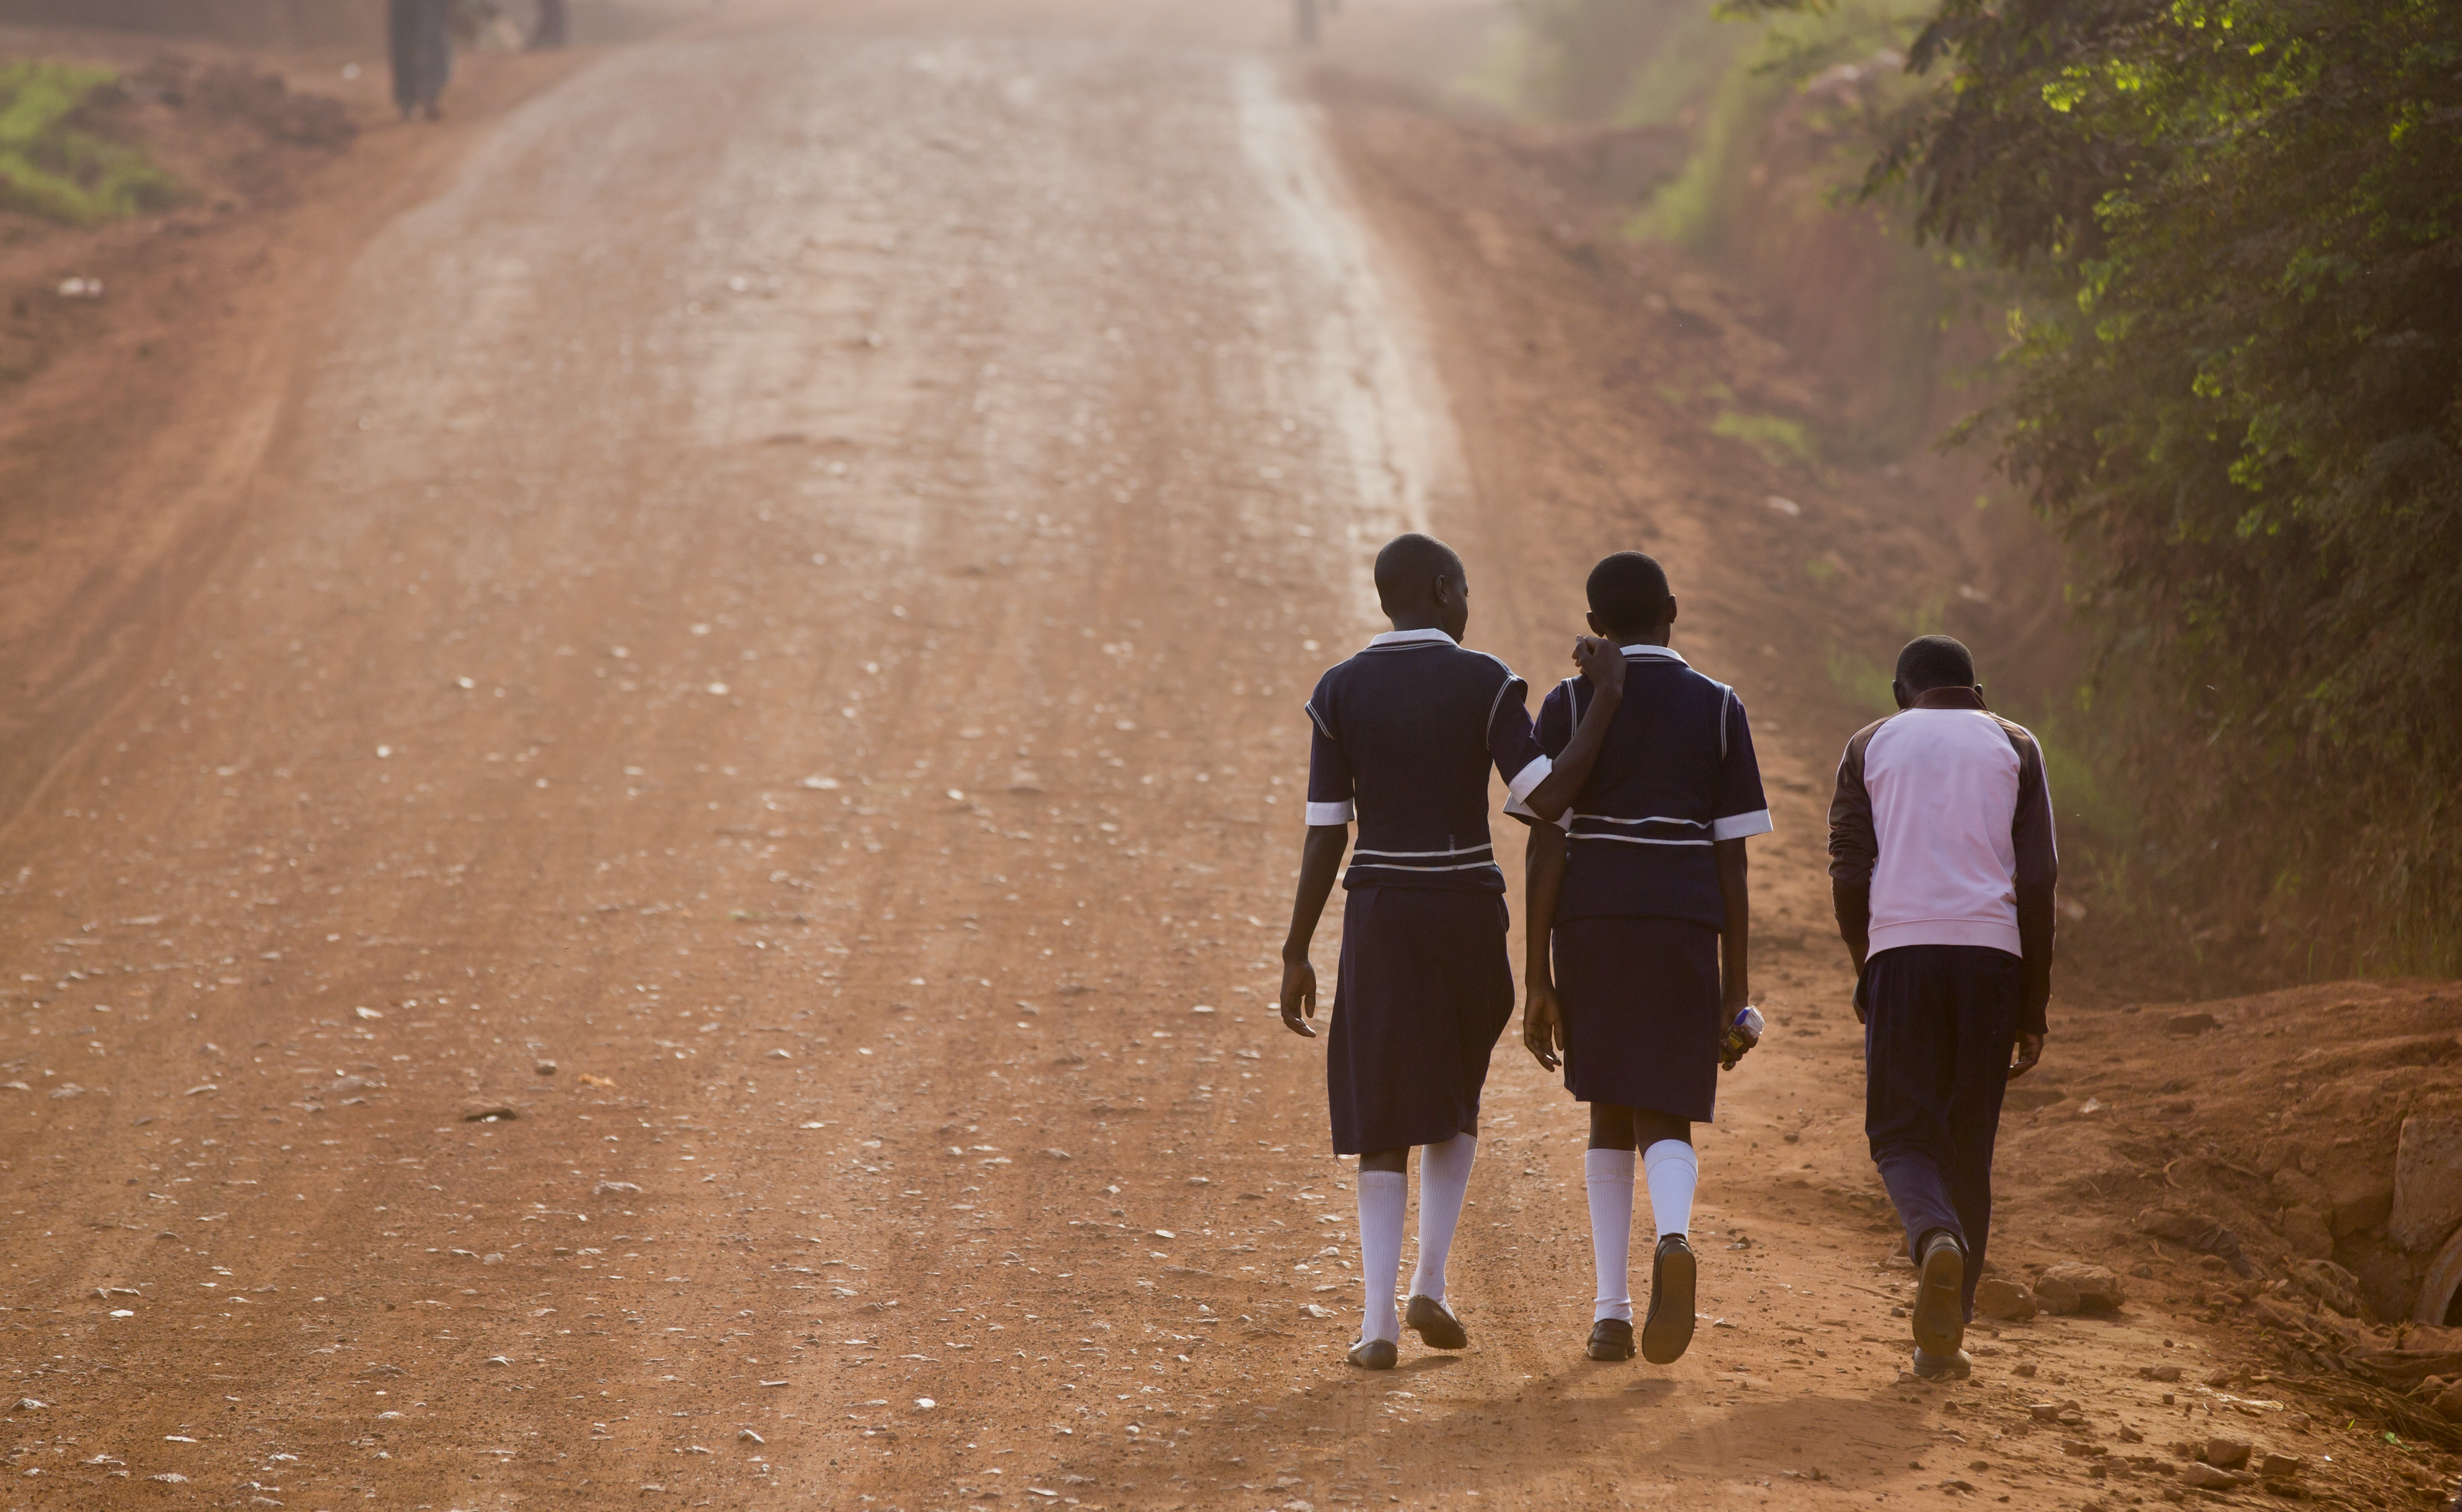 Ugandan children walk up a dusty murram road to school in the morning on the first day of the new term, in Kasangati, near Kampala, in Uganda Monday, Feb. 22, 2016. The new term started later than usual due to the recent presidential elections.